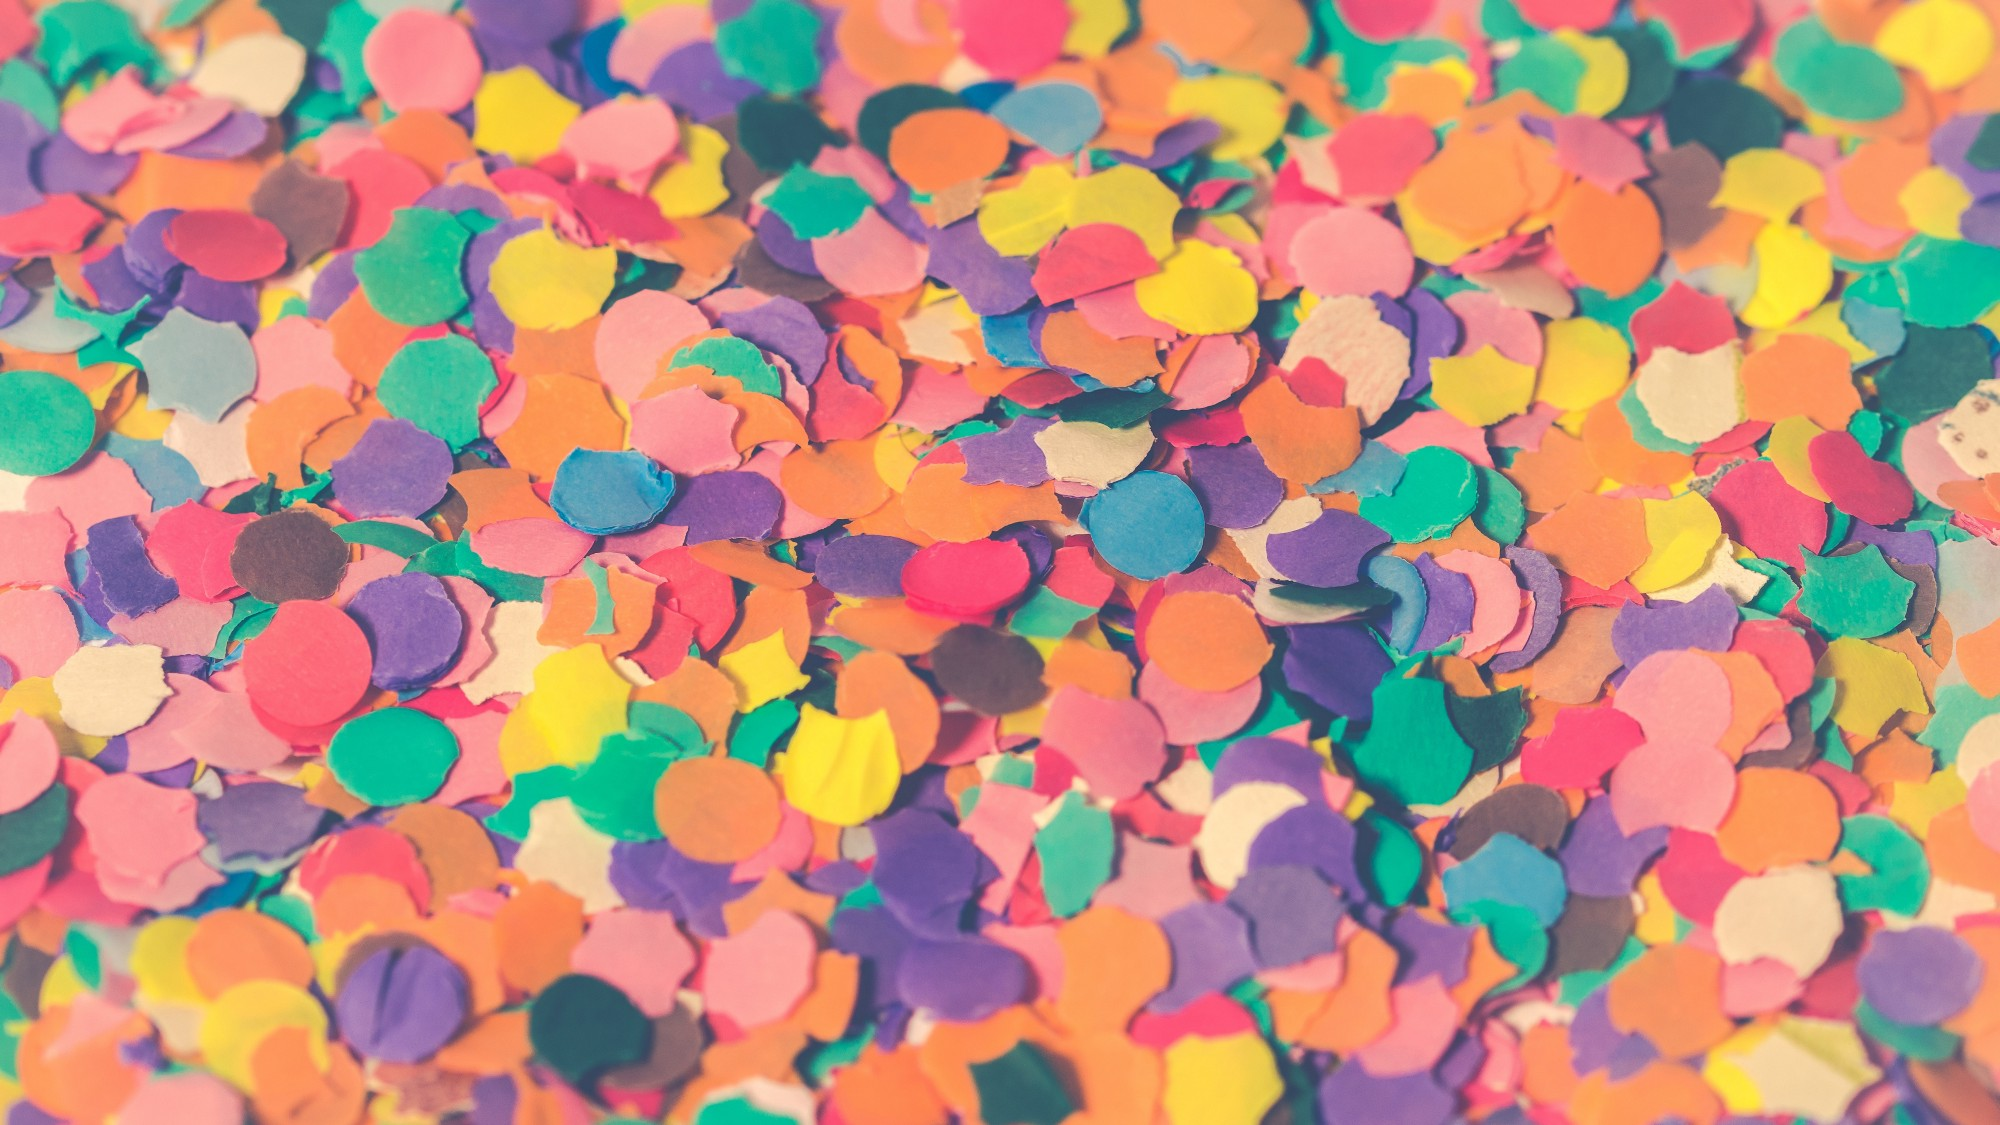 A pile of multi-colored paper confetti circles.